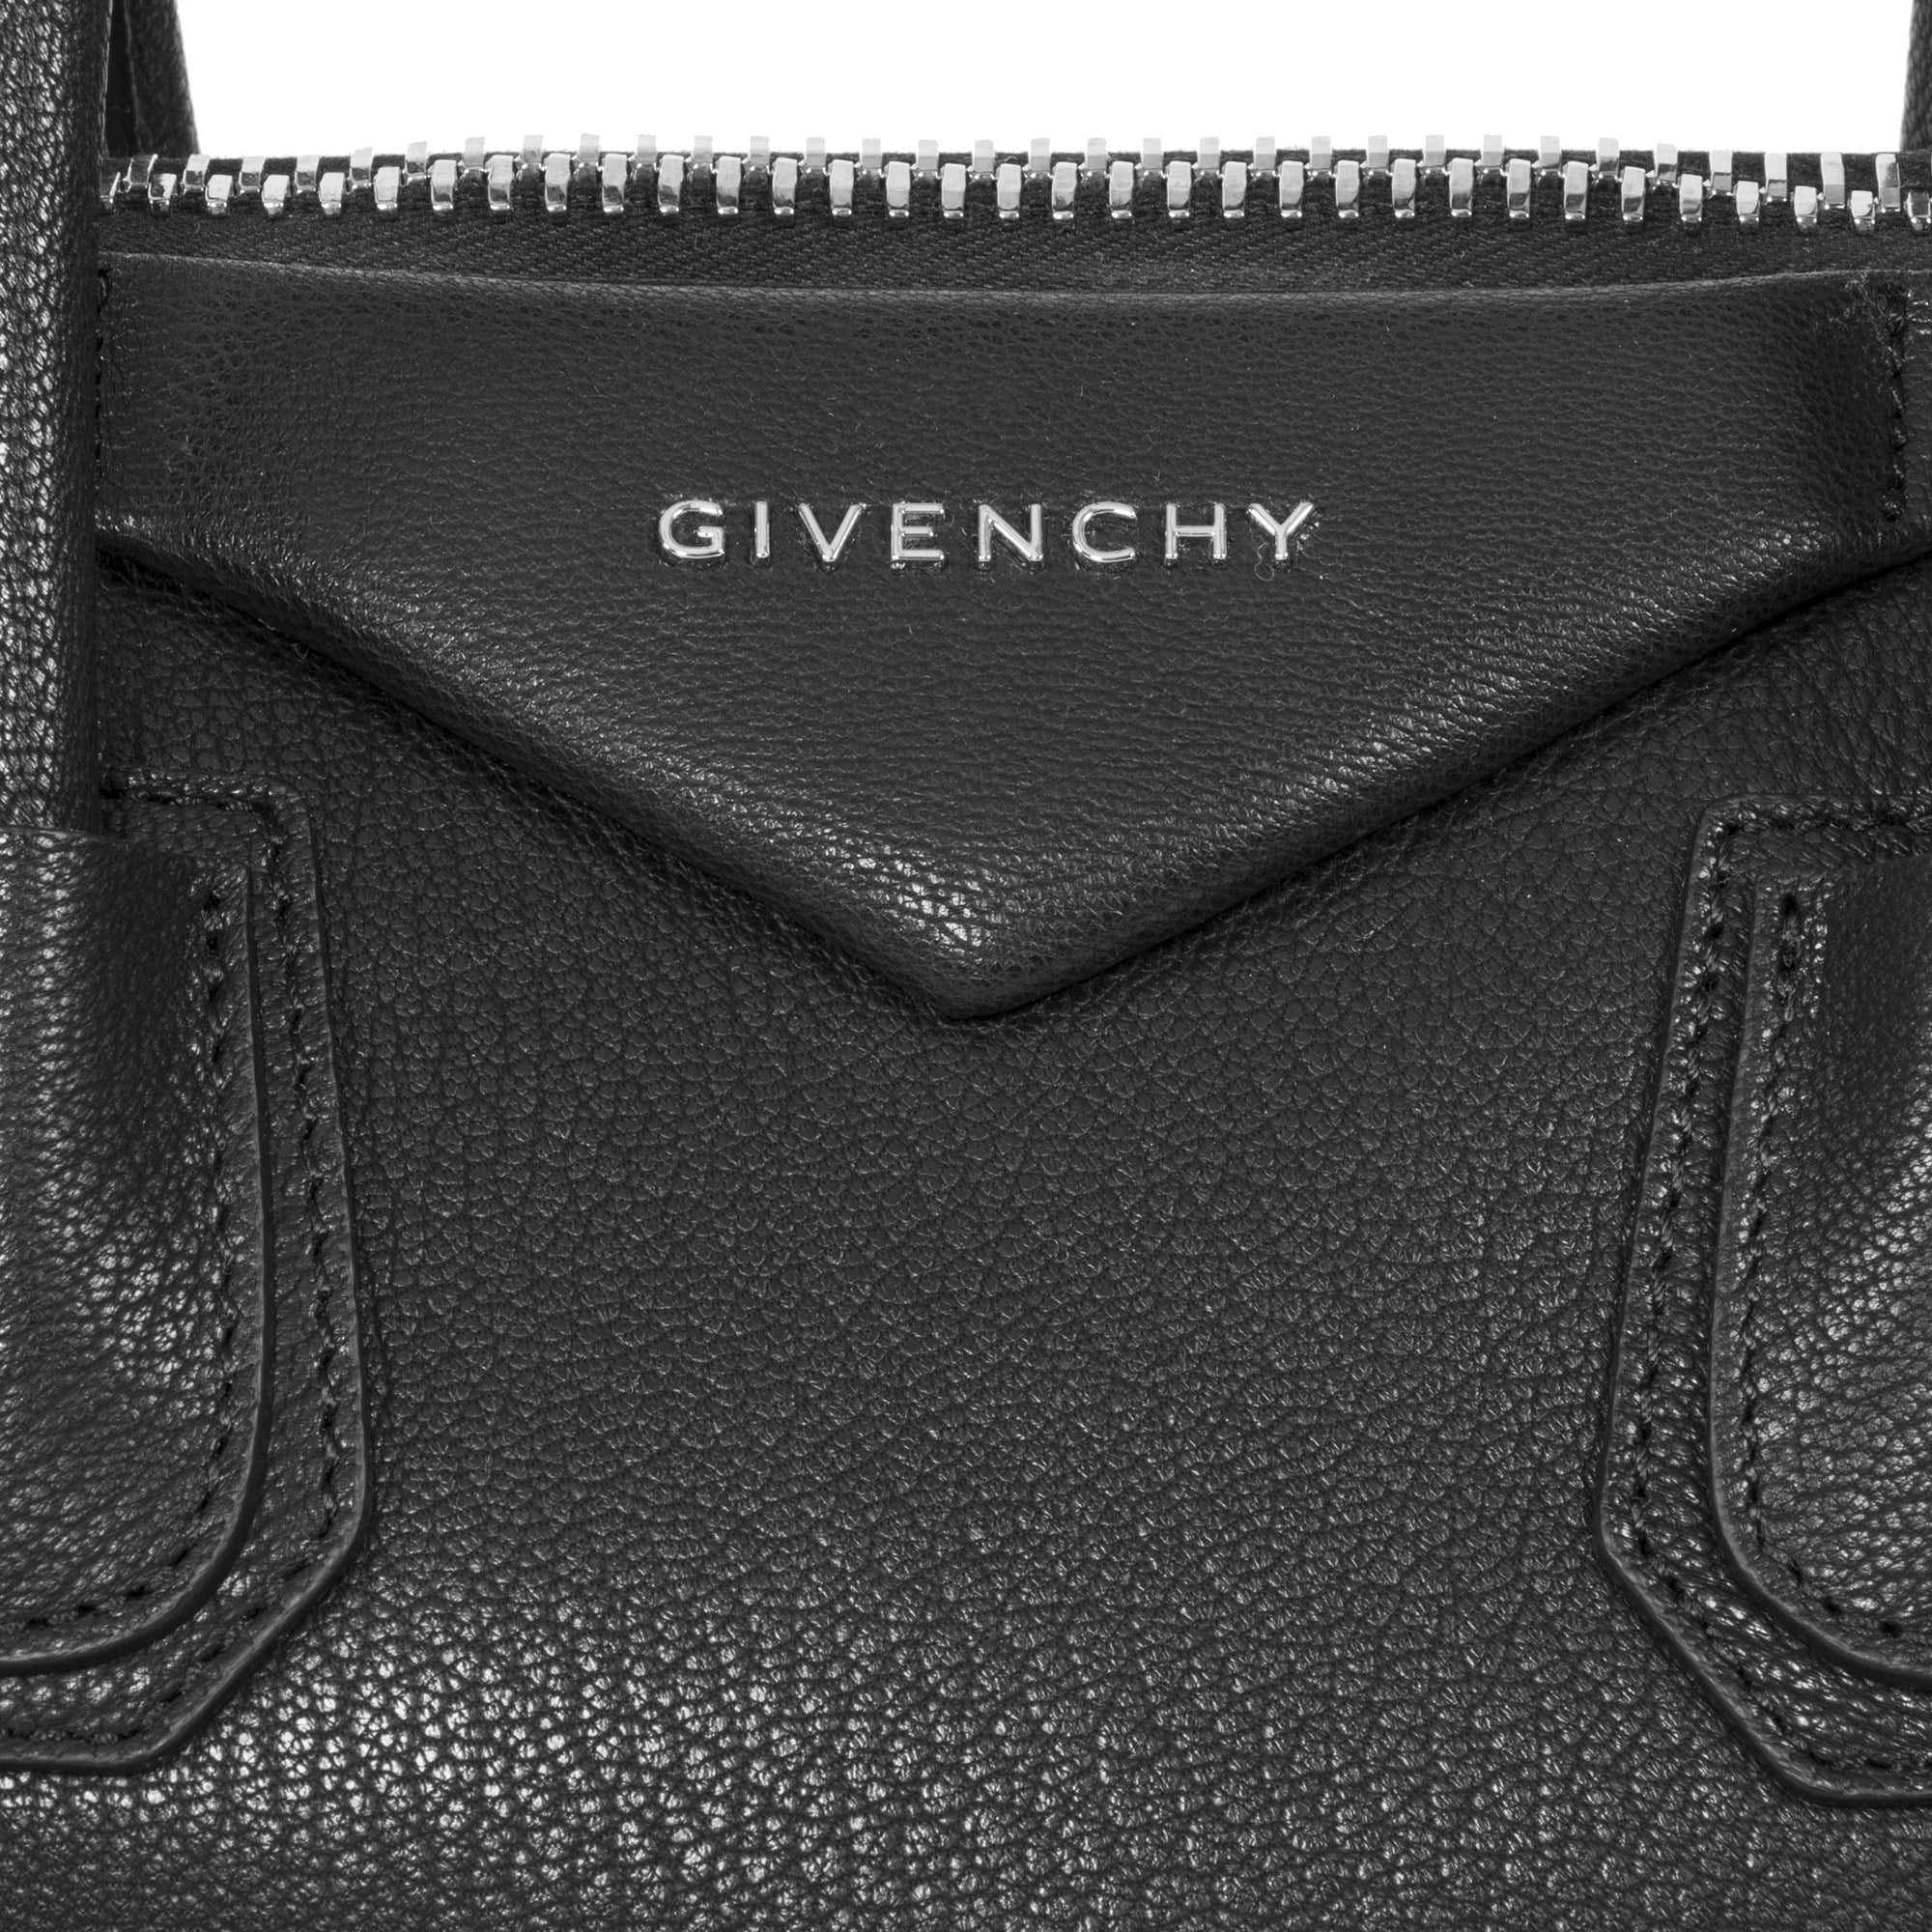 7c456c69cd Shop Givenchy Antigona Sugar Goatskin Leather Satchel Bag - Free Shipping  Today - Overstock - 23086529